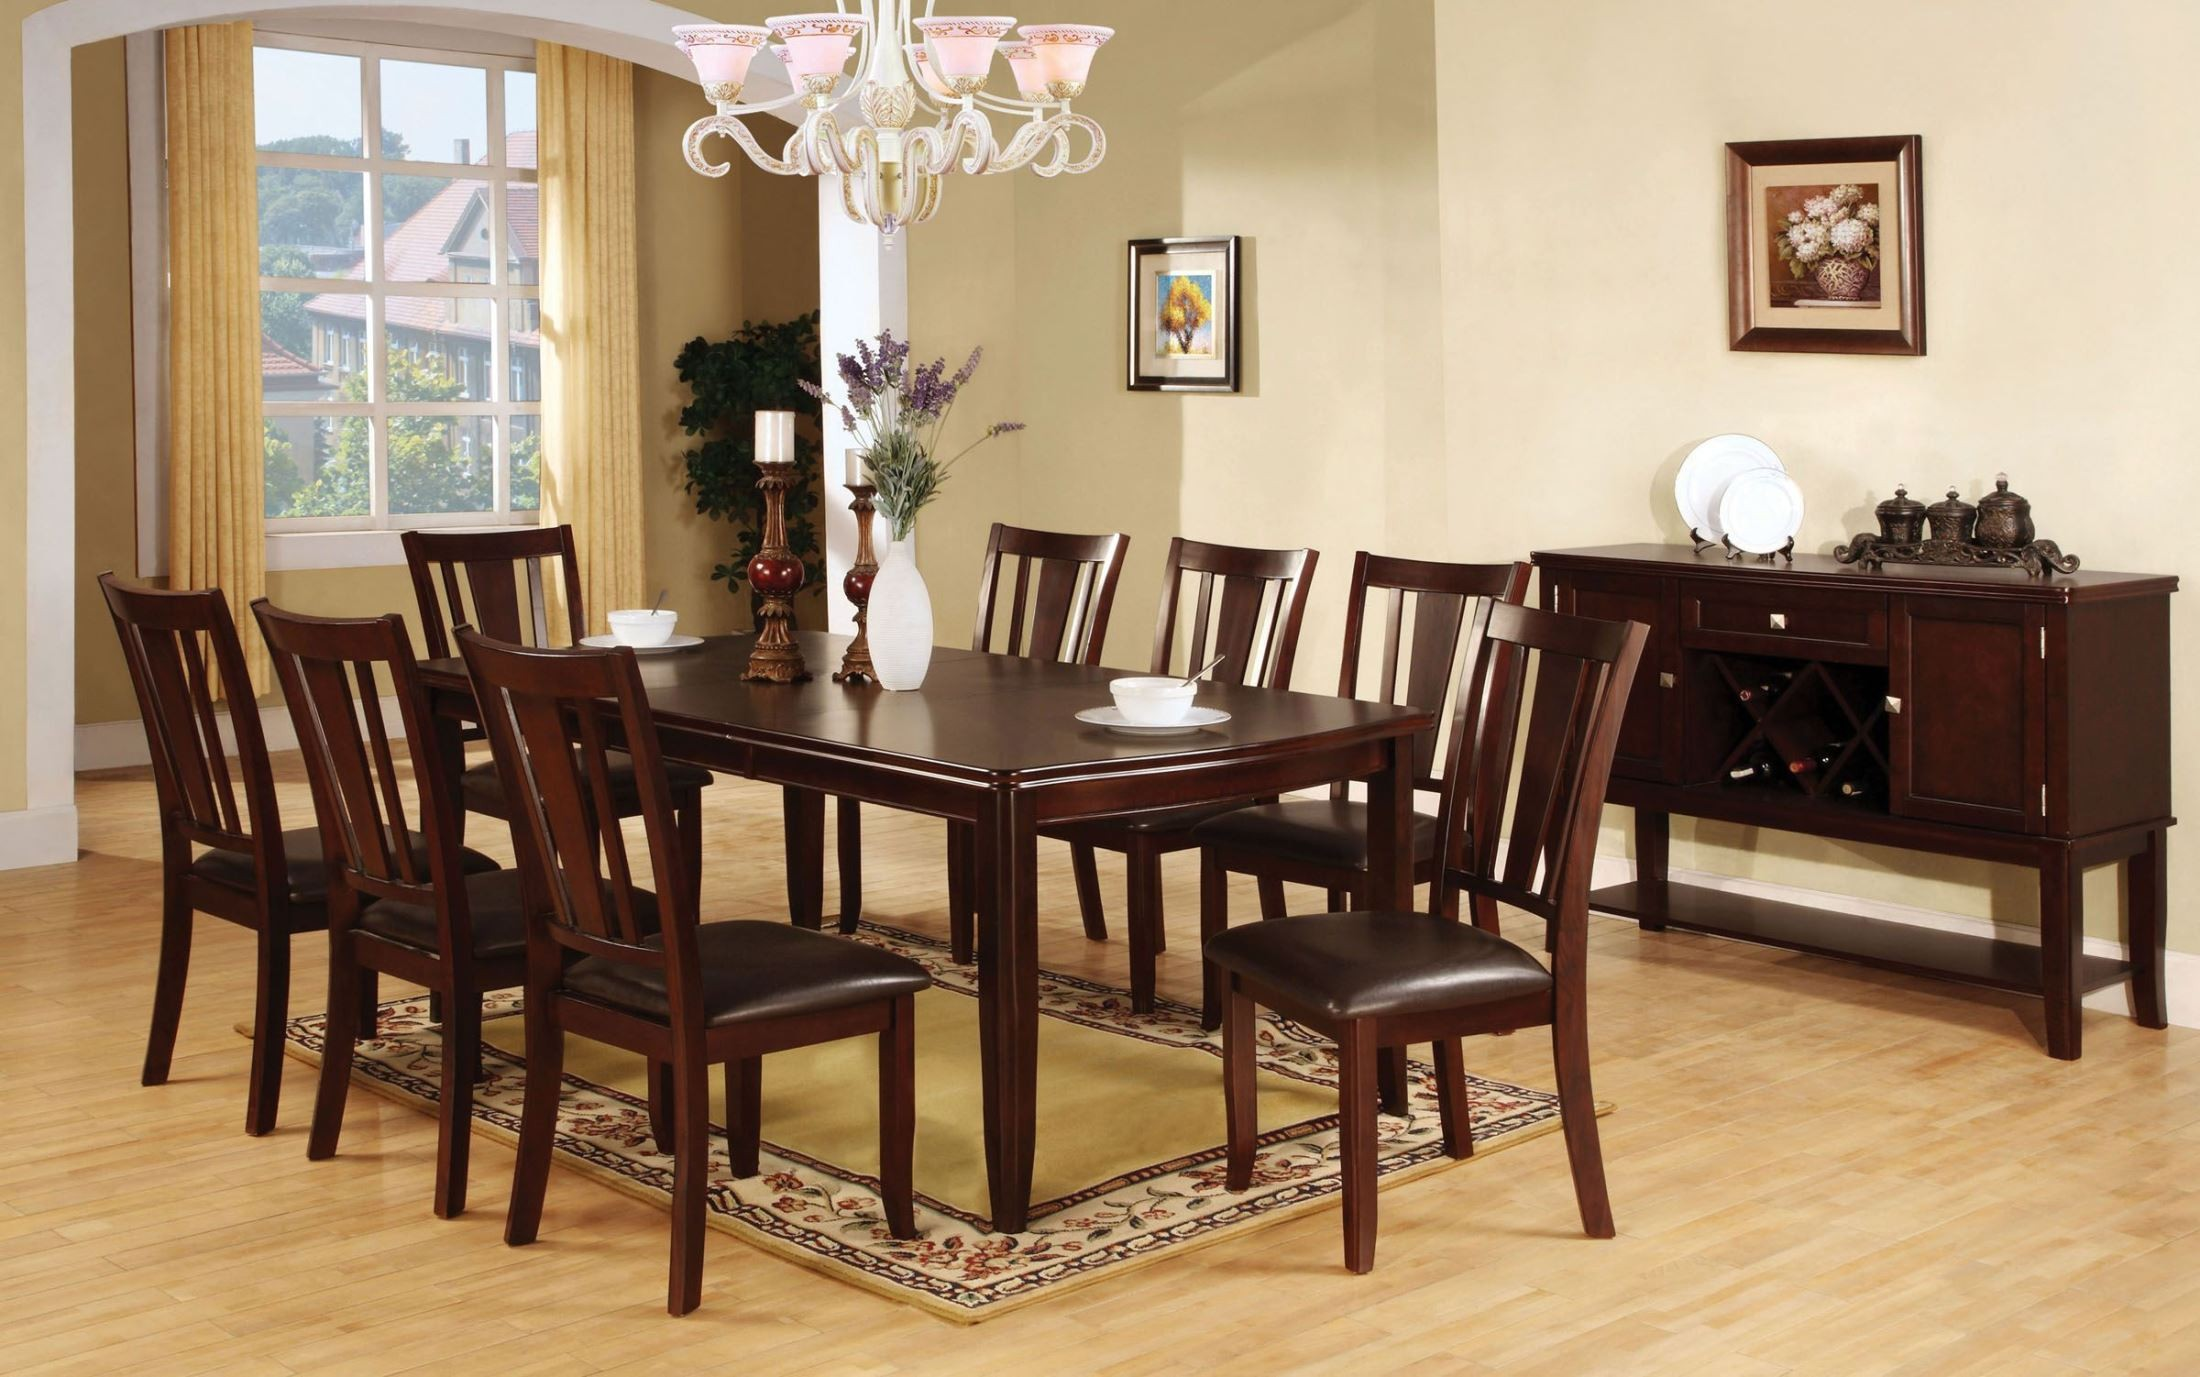 Edgewood I Espresso Rectangular Extendable Leg Dining Room Set Cm3336t Furniture Of America